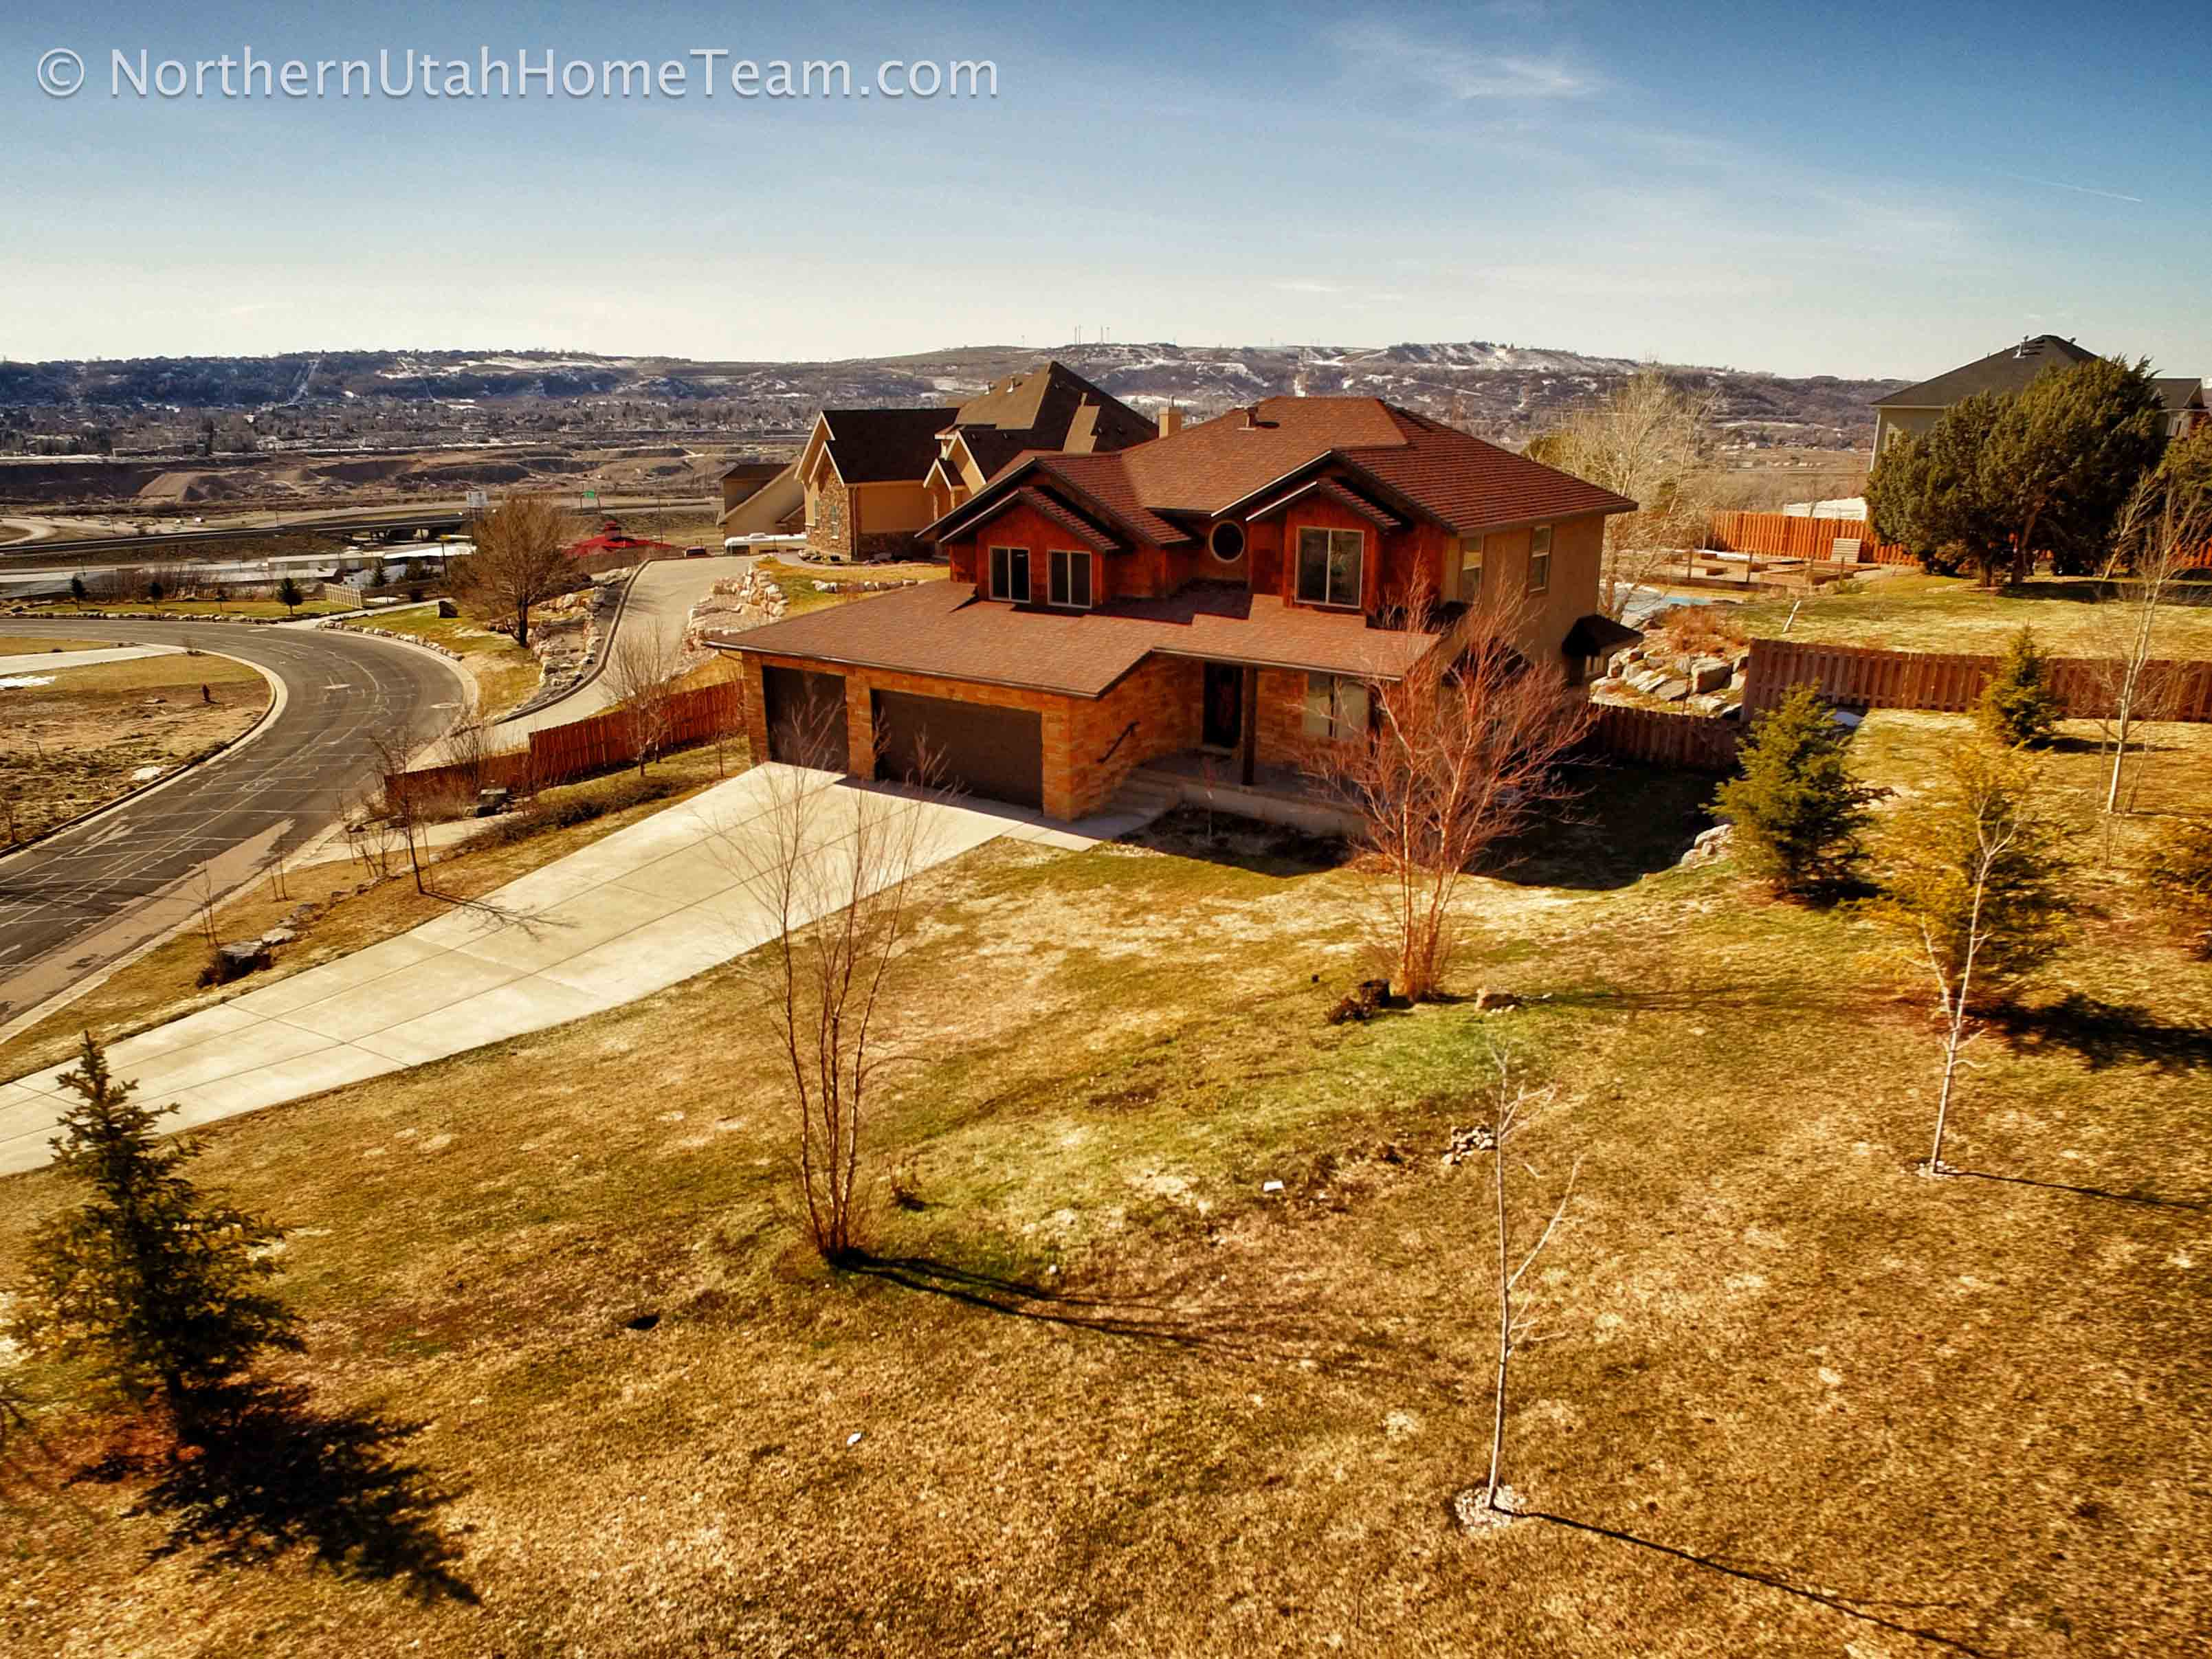 6 Bed 4 Bath Uintah Utah Home For Sale Near South Ogden